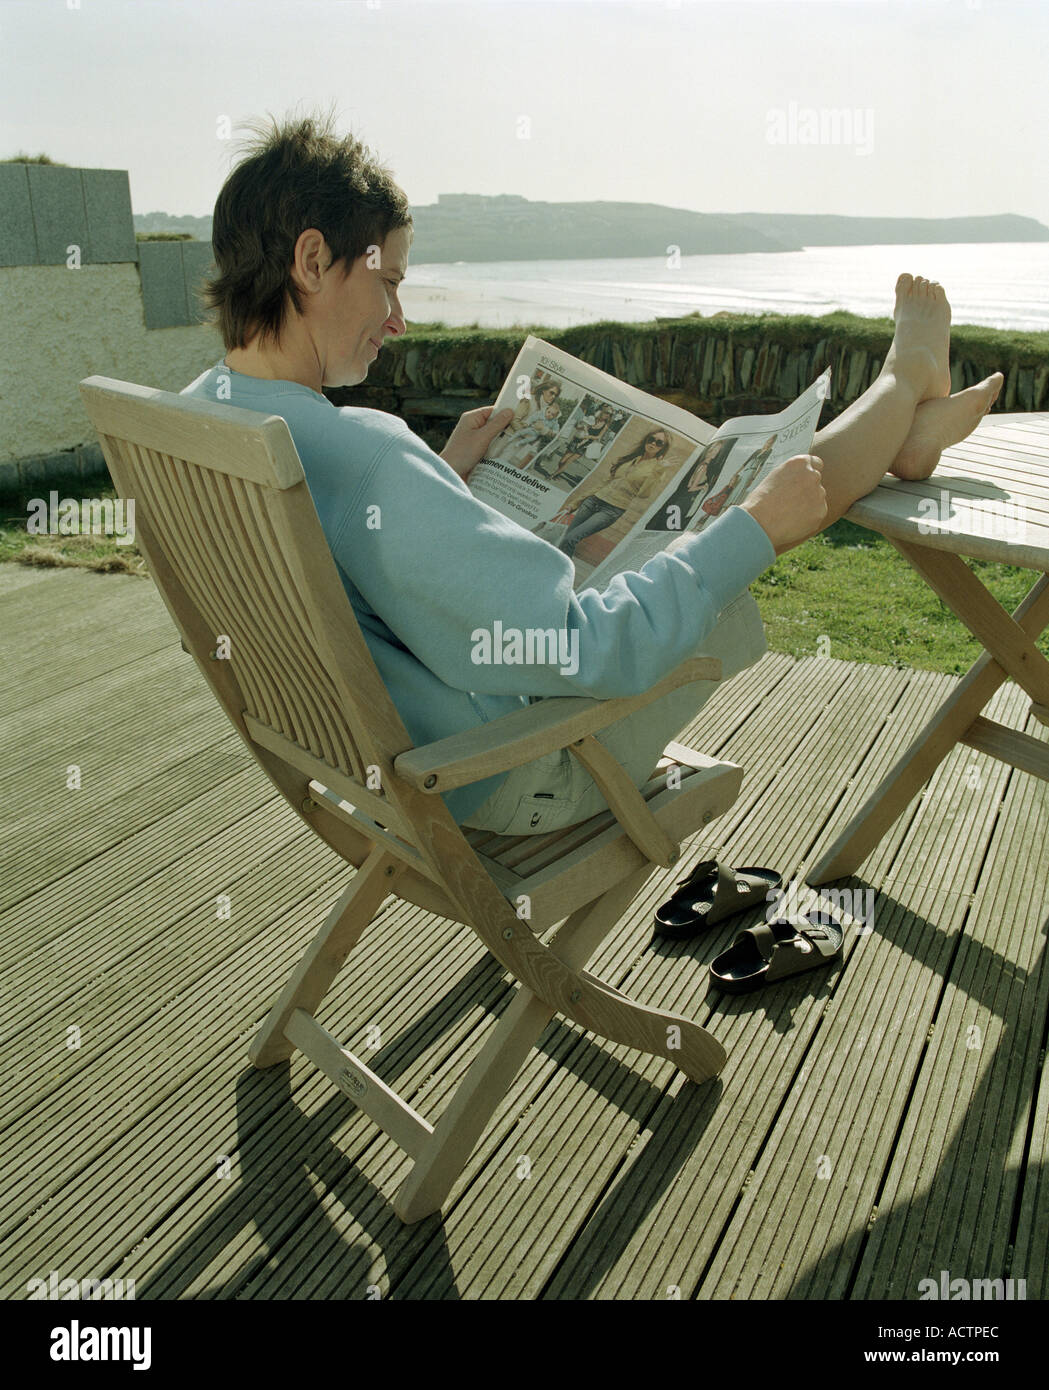 Woman Sitting With Feet On Table On A Deck Chair In The